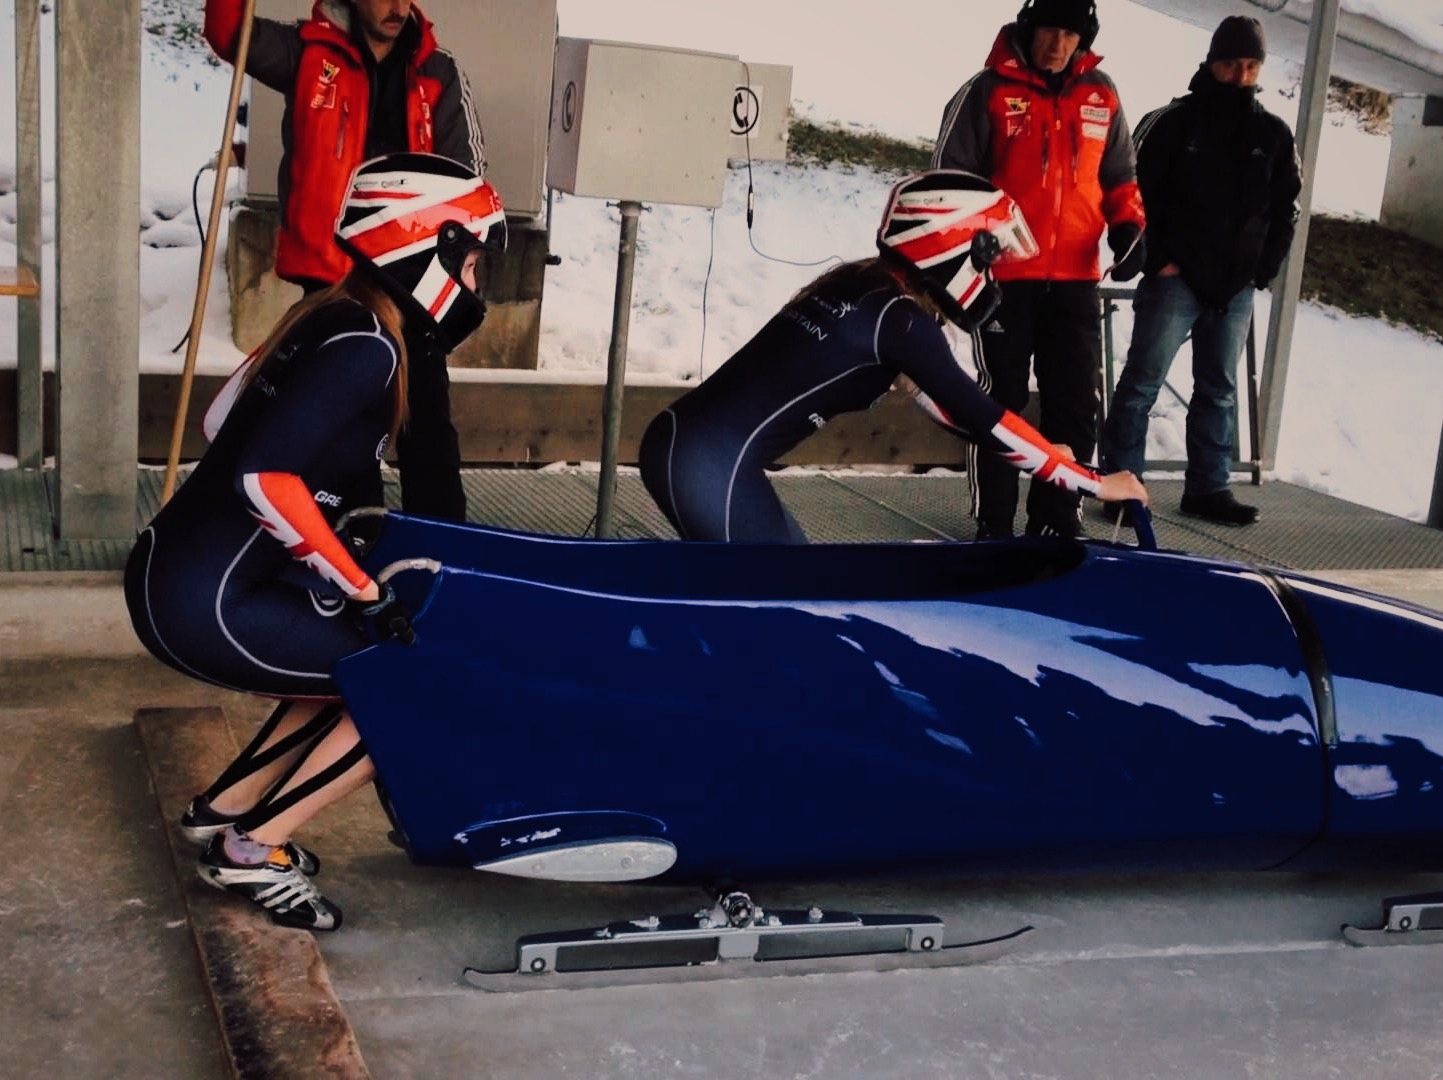 mica-mcneill-got-this-bobsledding-champ.jpg